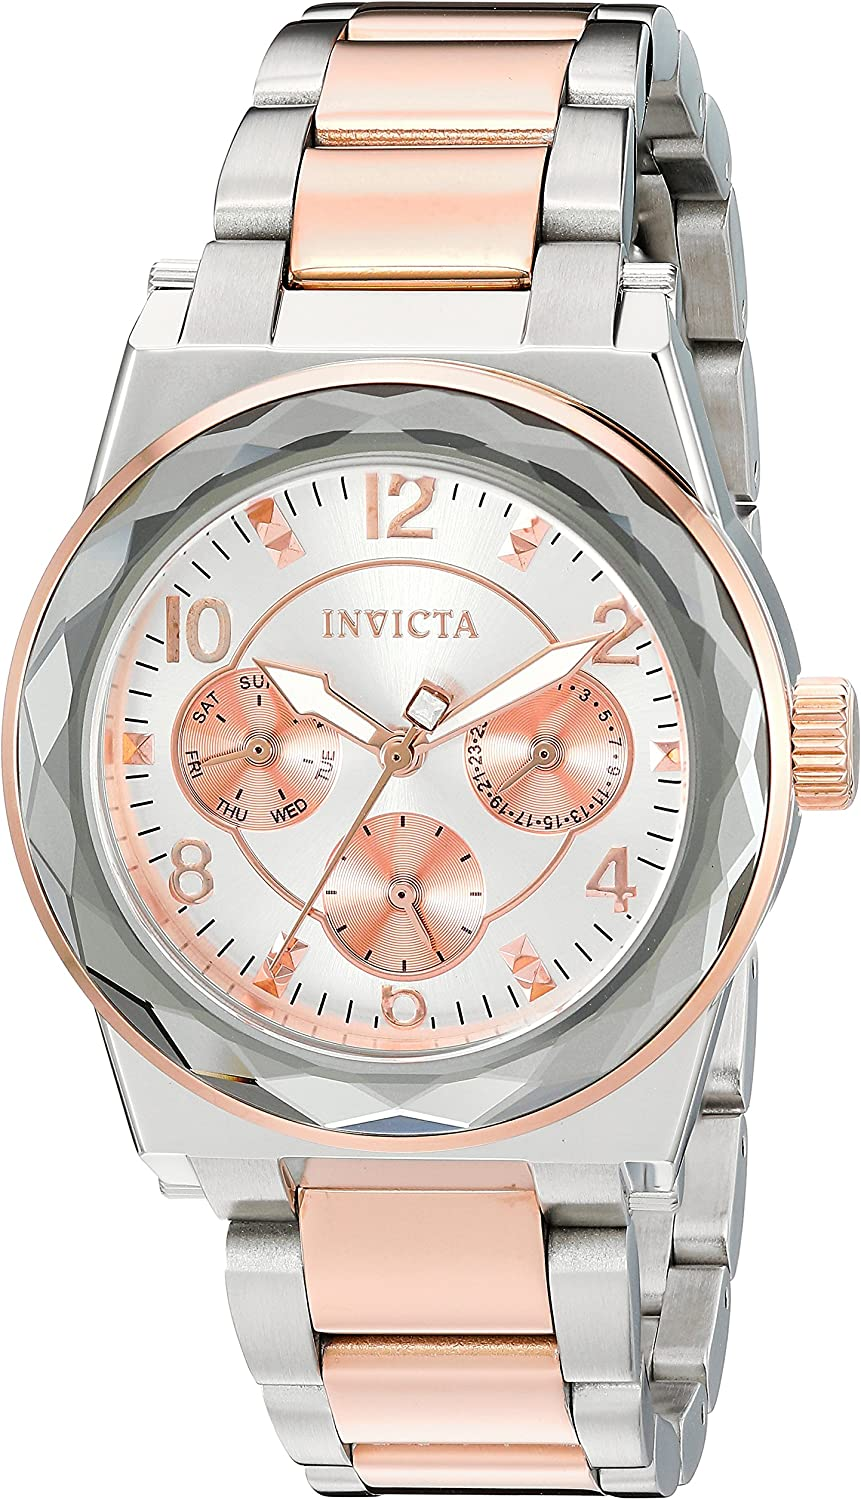 Invicta Women s Angel Quartz Watch with Stainless-Steel Strap, Two Tone, 20 Model 22109